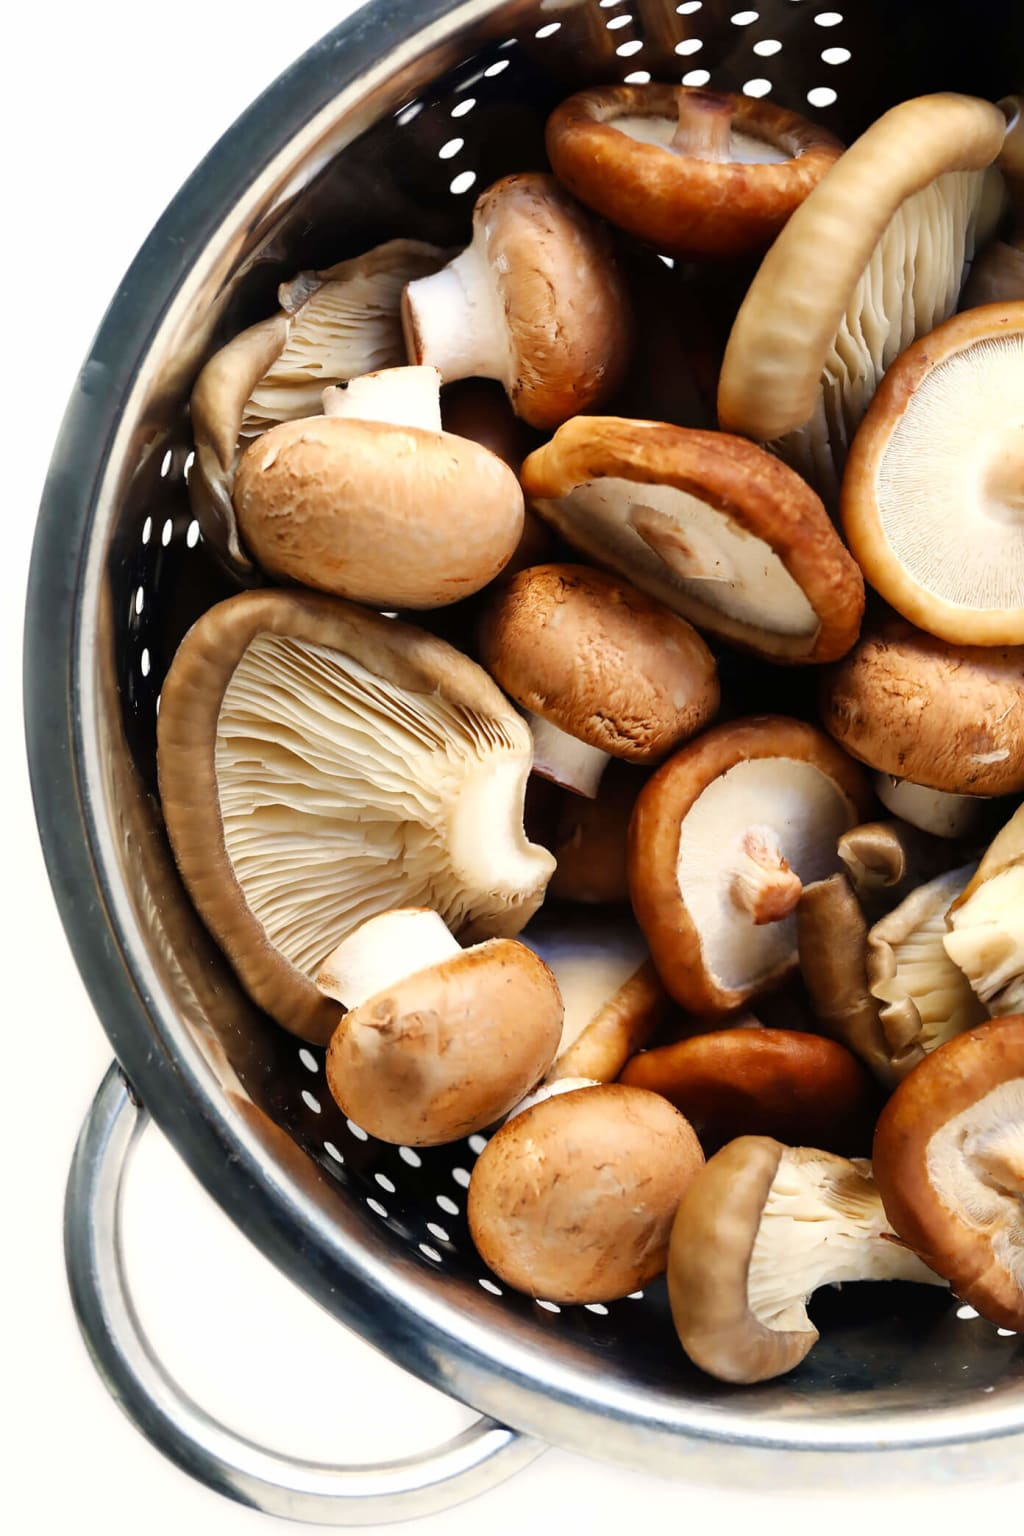 5 Mushrooms You Should Know